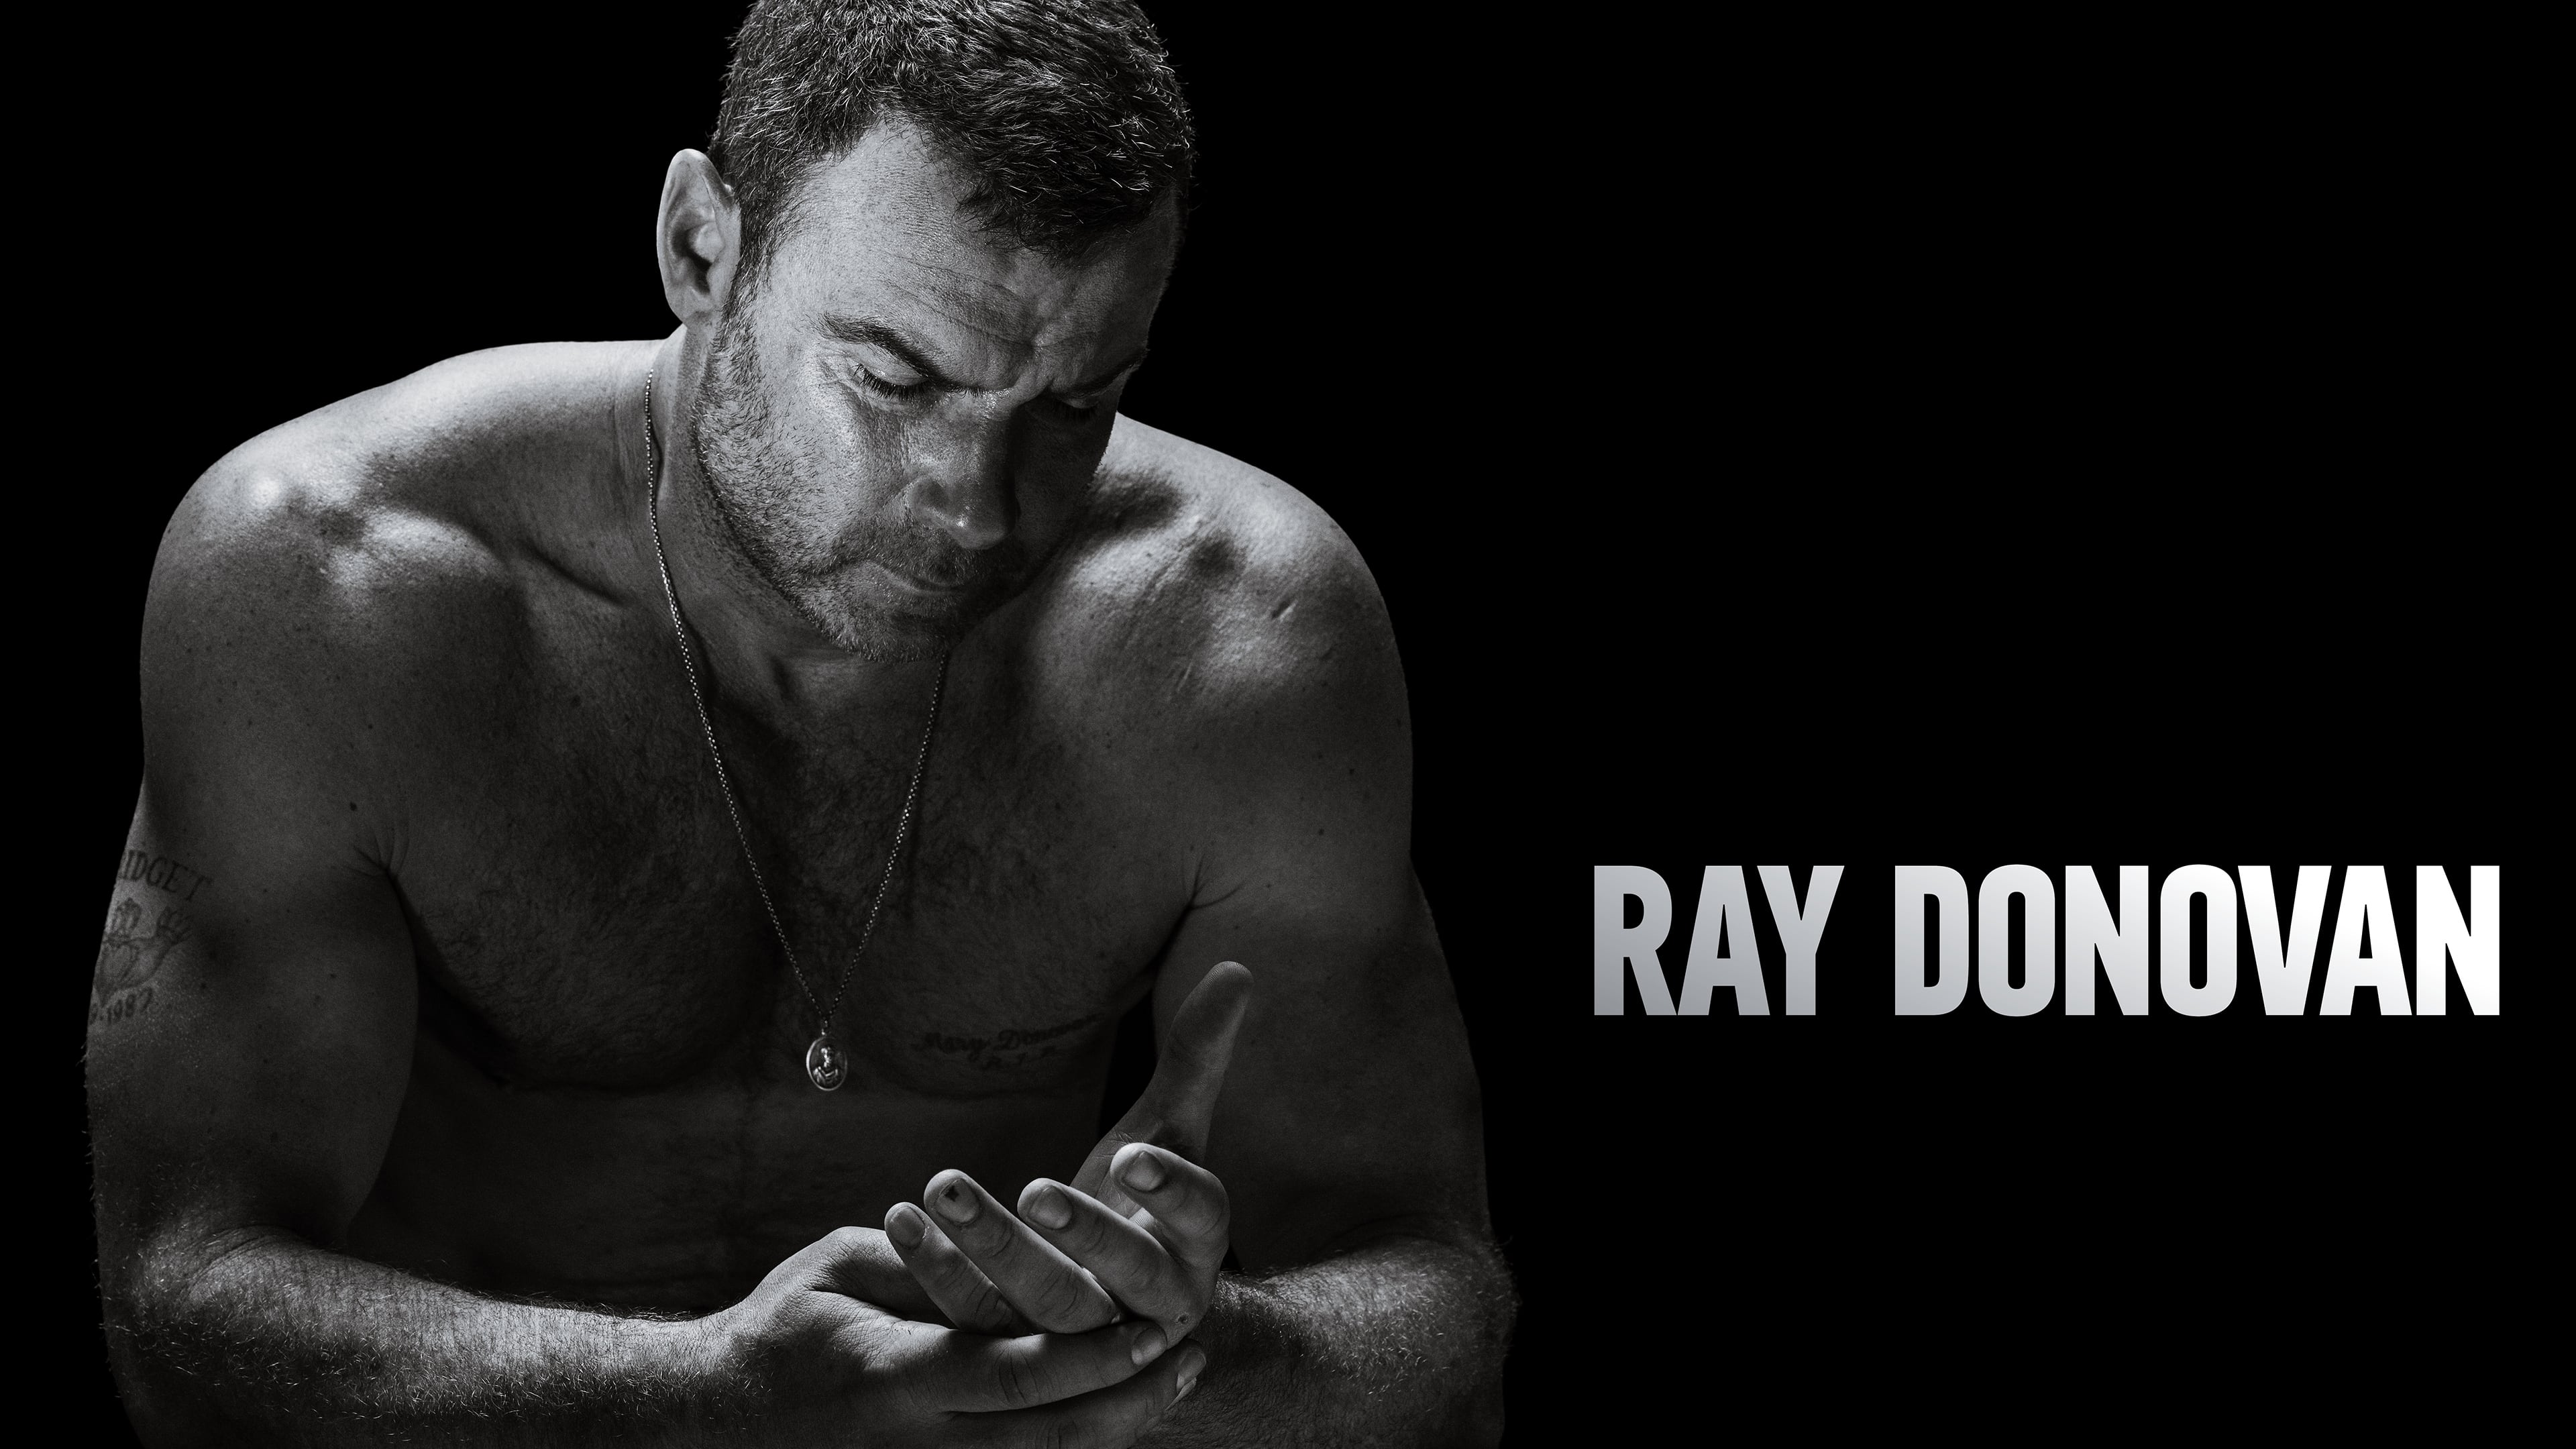 Ray Donovan returning to Showtime with a movie